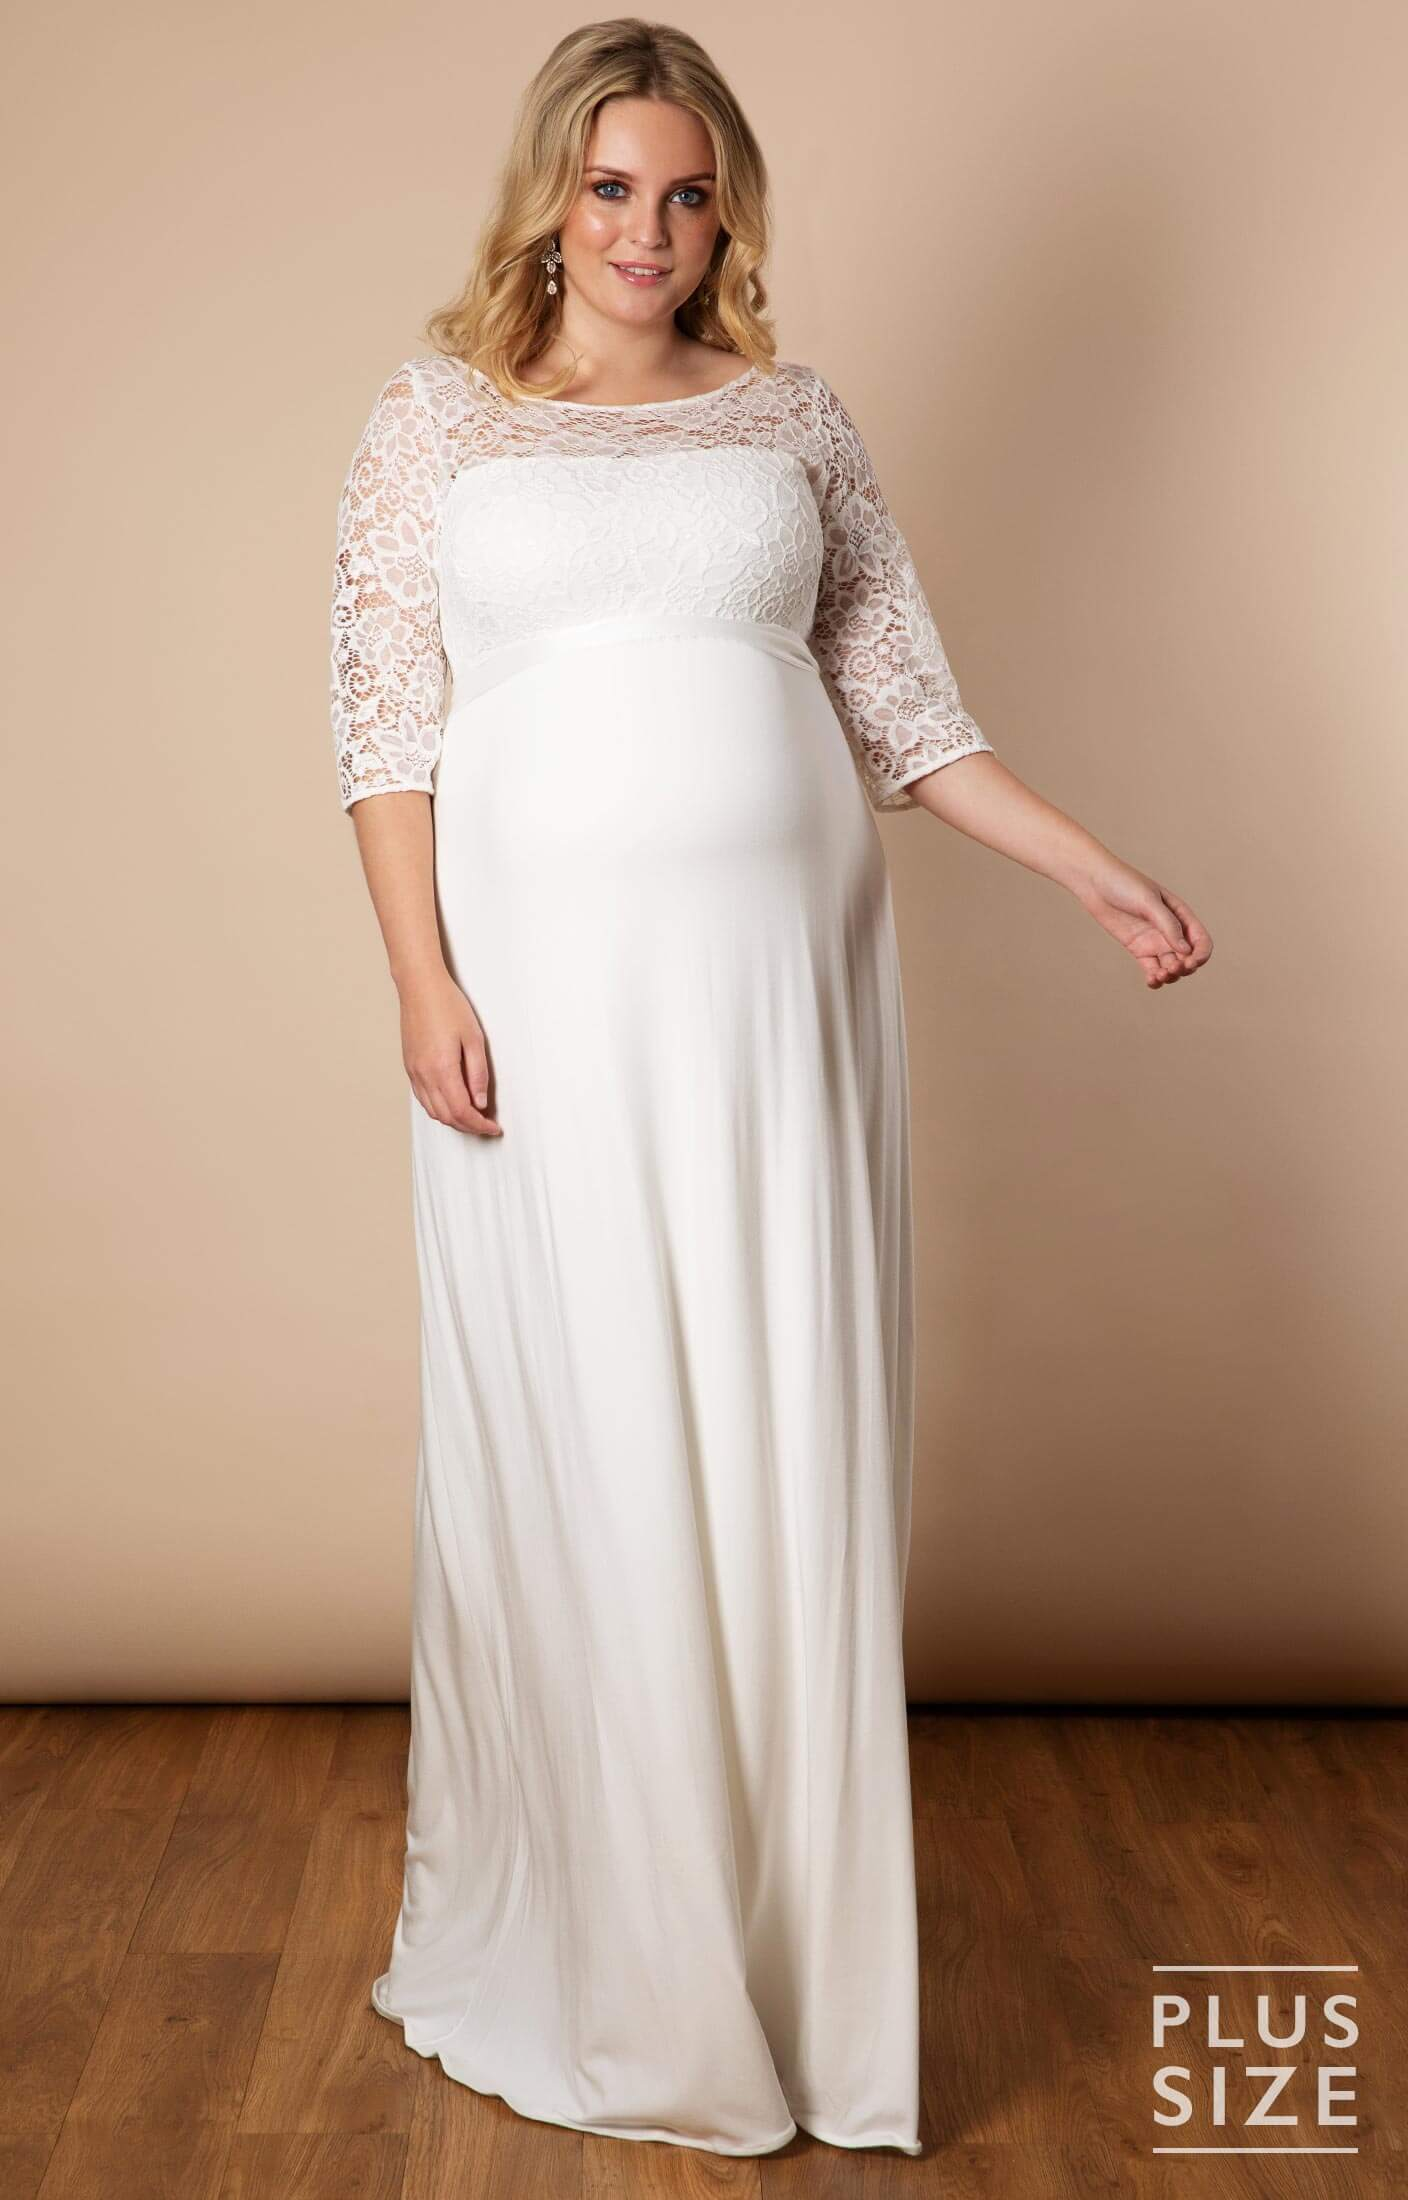 Lucia Plus Size Maternity Wedding Gown Long Ivory White - Maternity Wedding  Dresses, Evening Wear and Party Clothes by Tiffany Rose